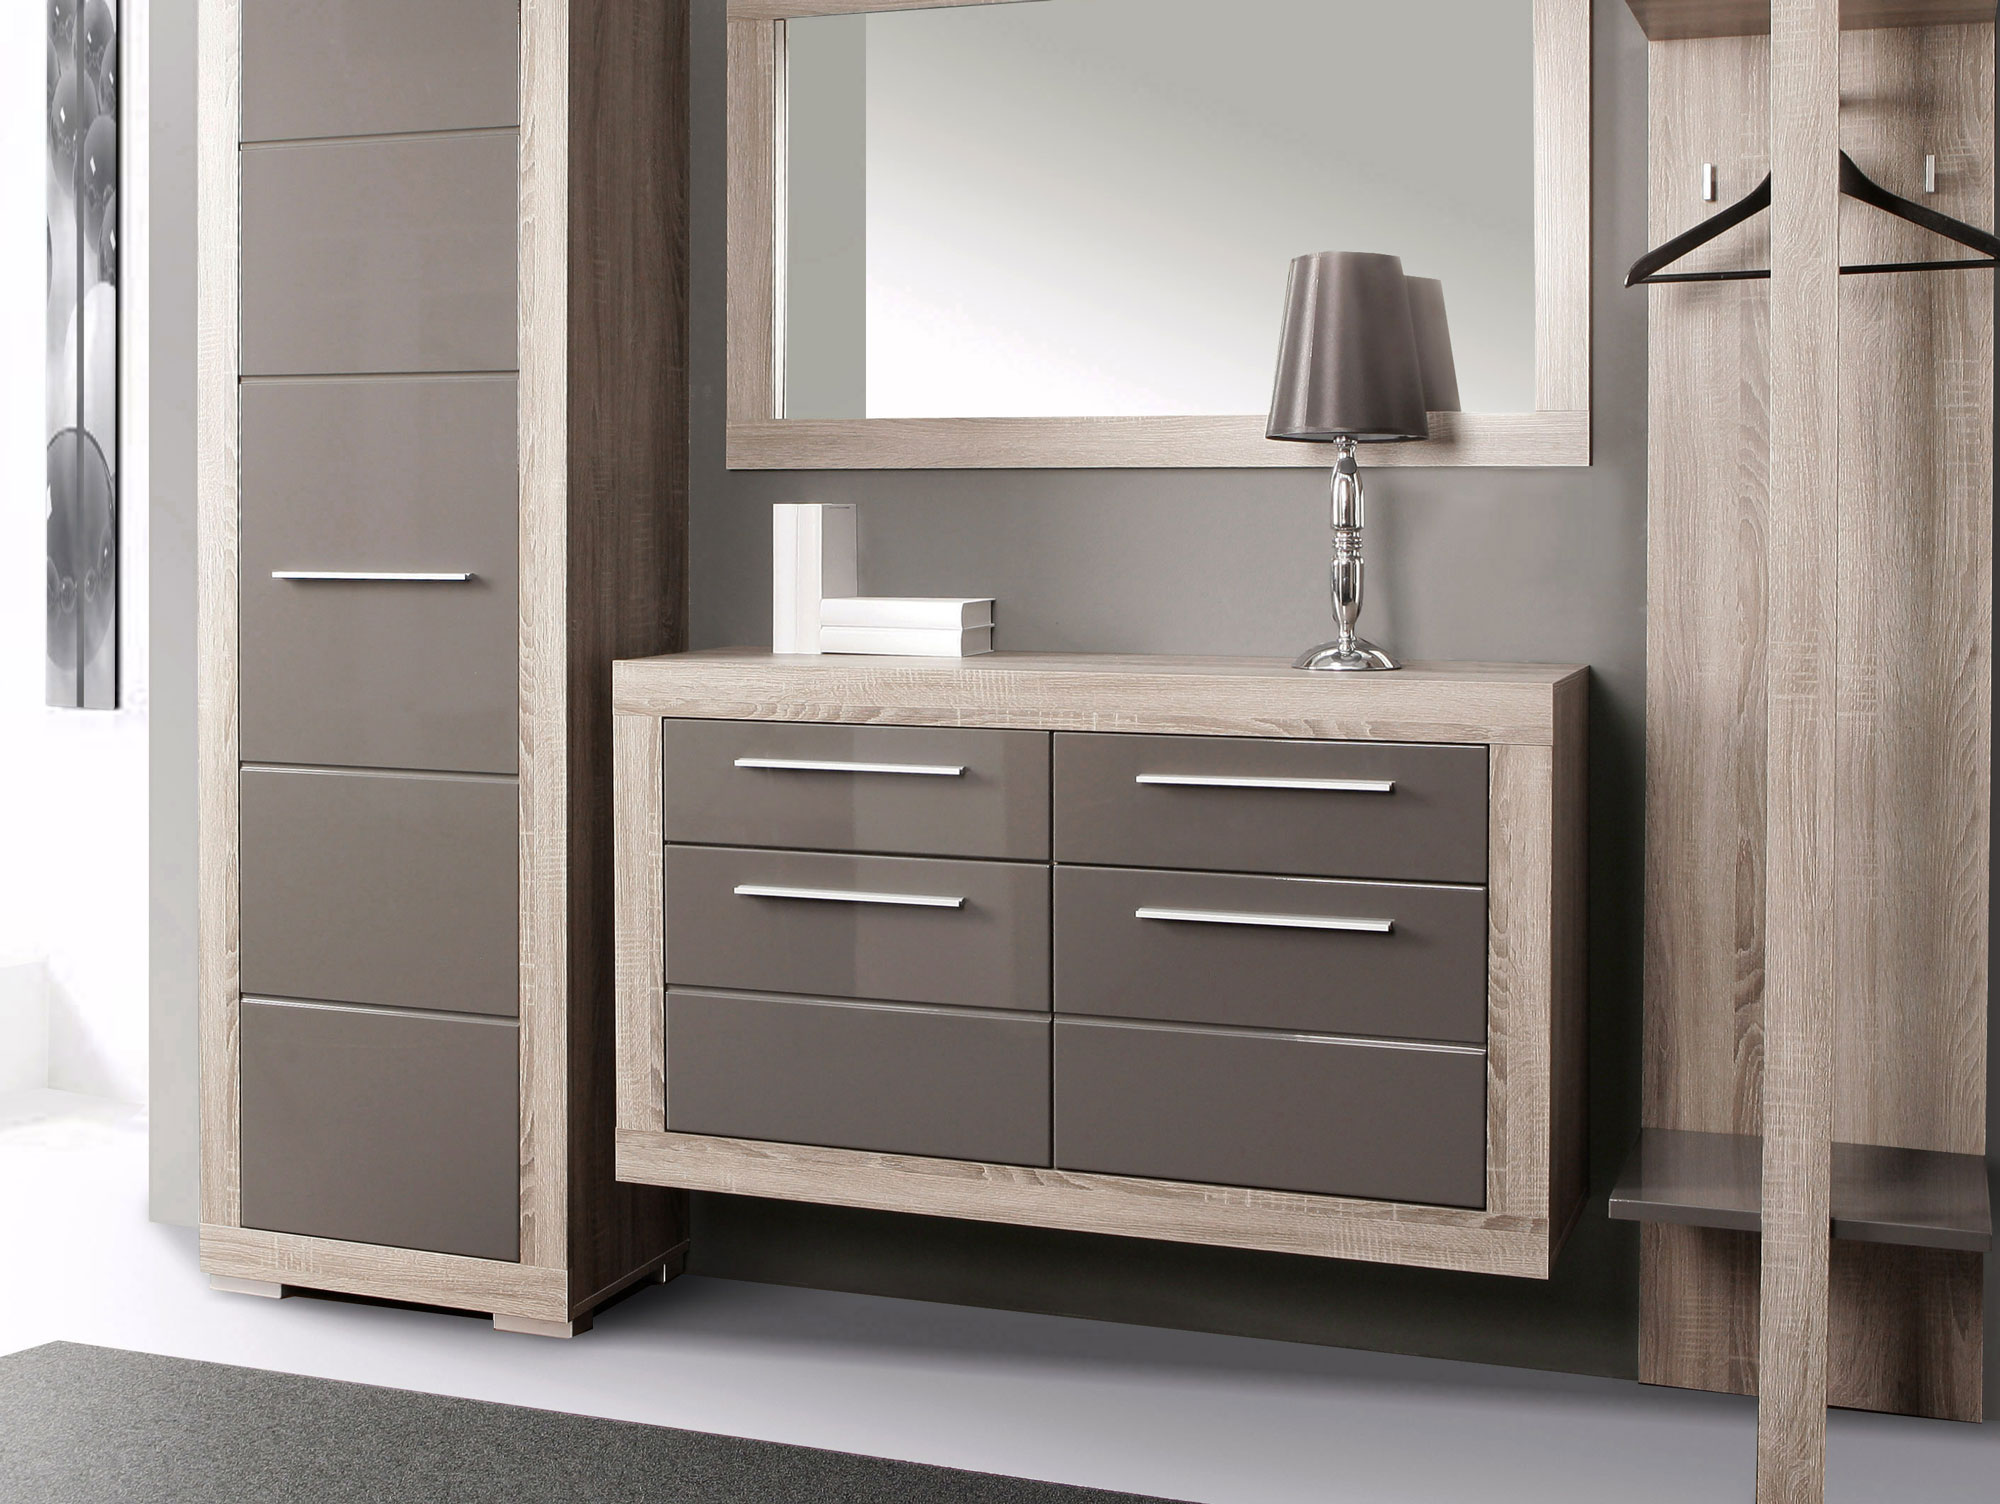 amberg schuhschrank eiche sonoma grau grau hochglanz. Black Bedroom Furniture Sets. Home Design Ideas